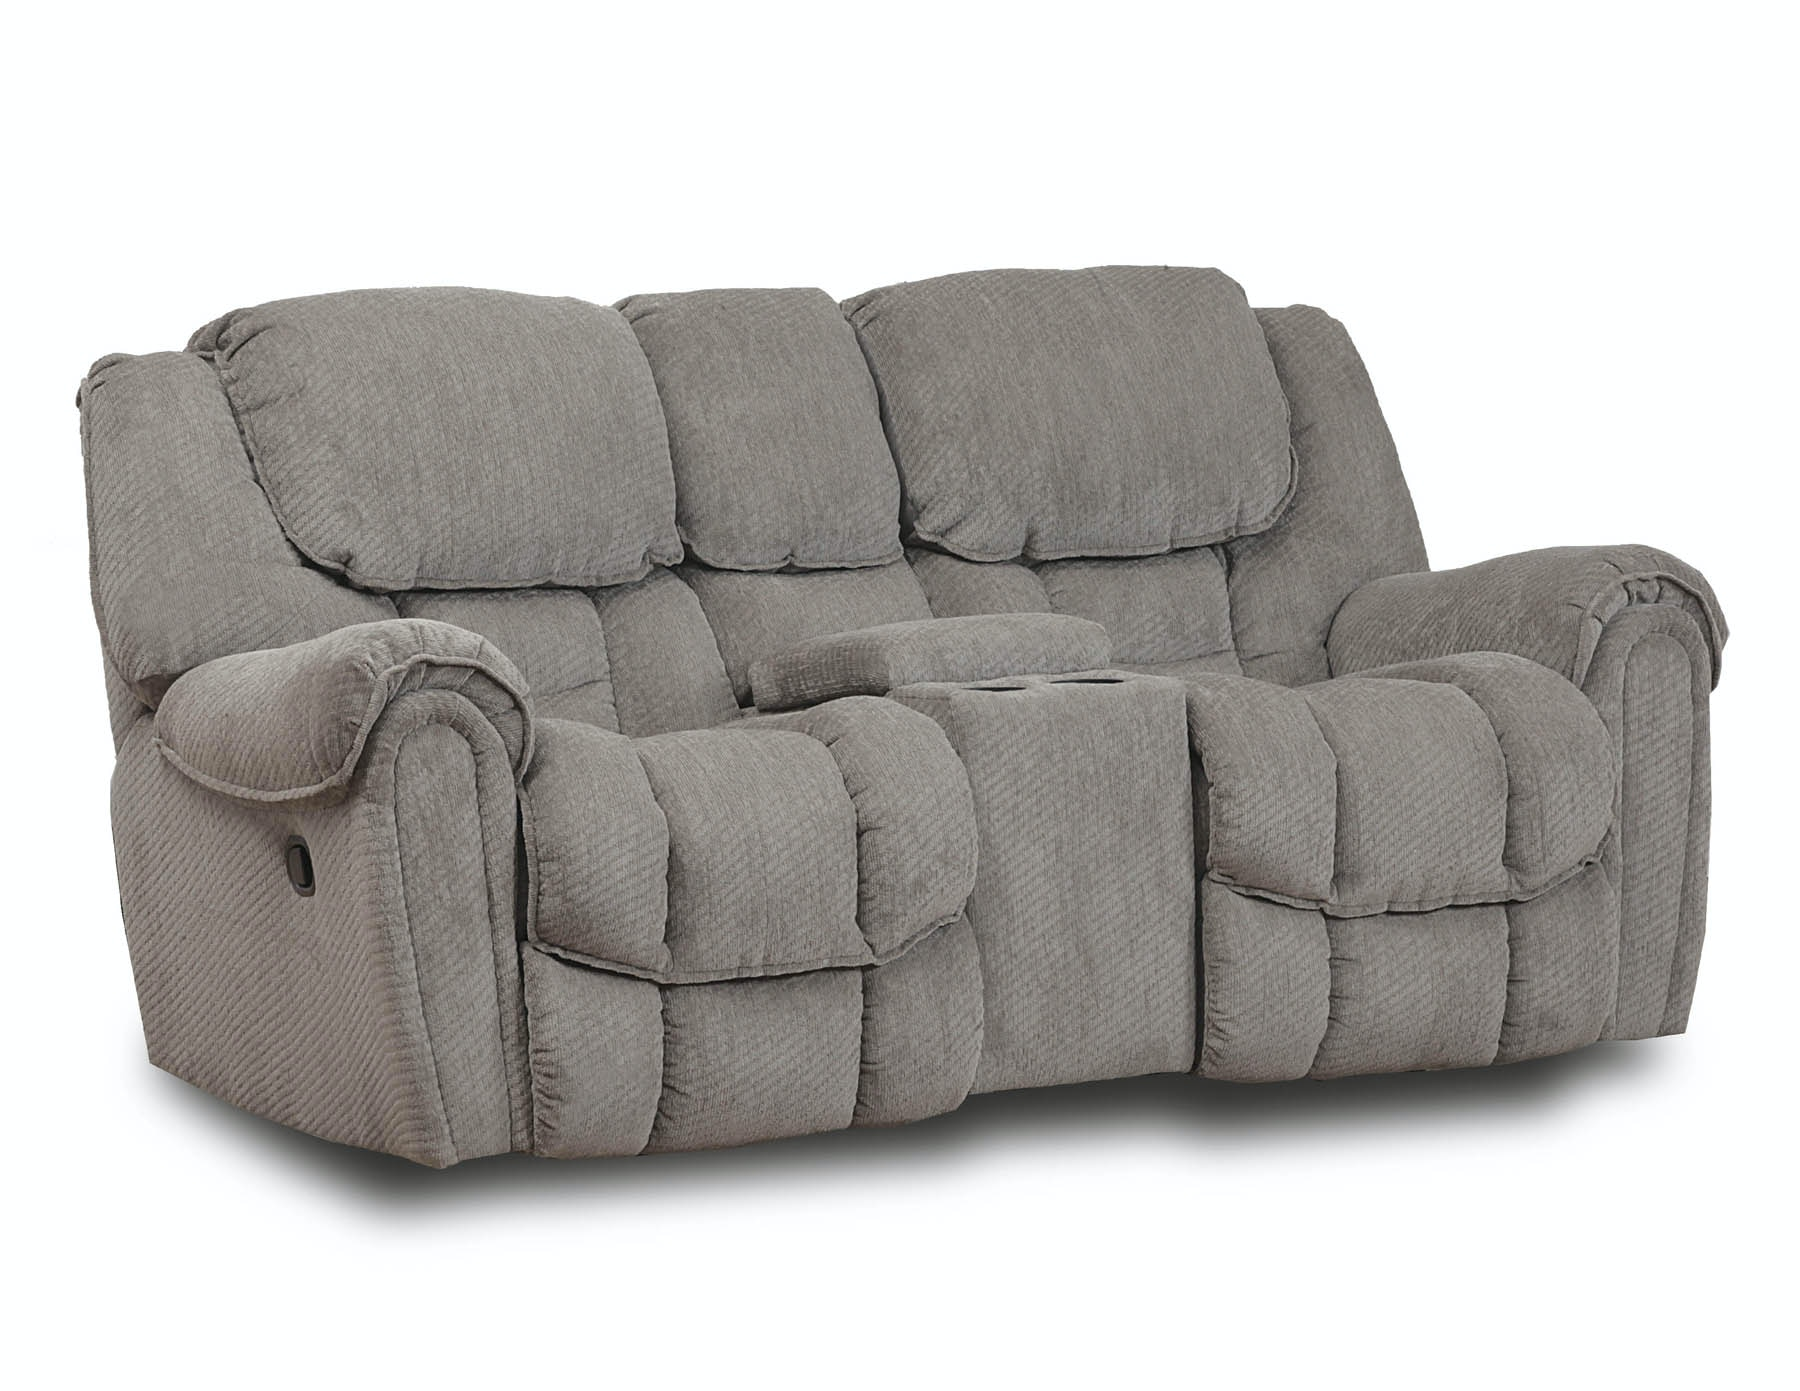 Attractive Home Stretch Del Mar Rocking Reclining Loveseat 055229